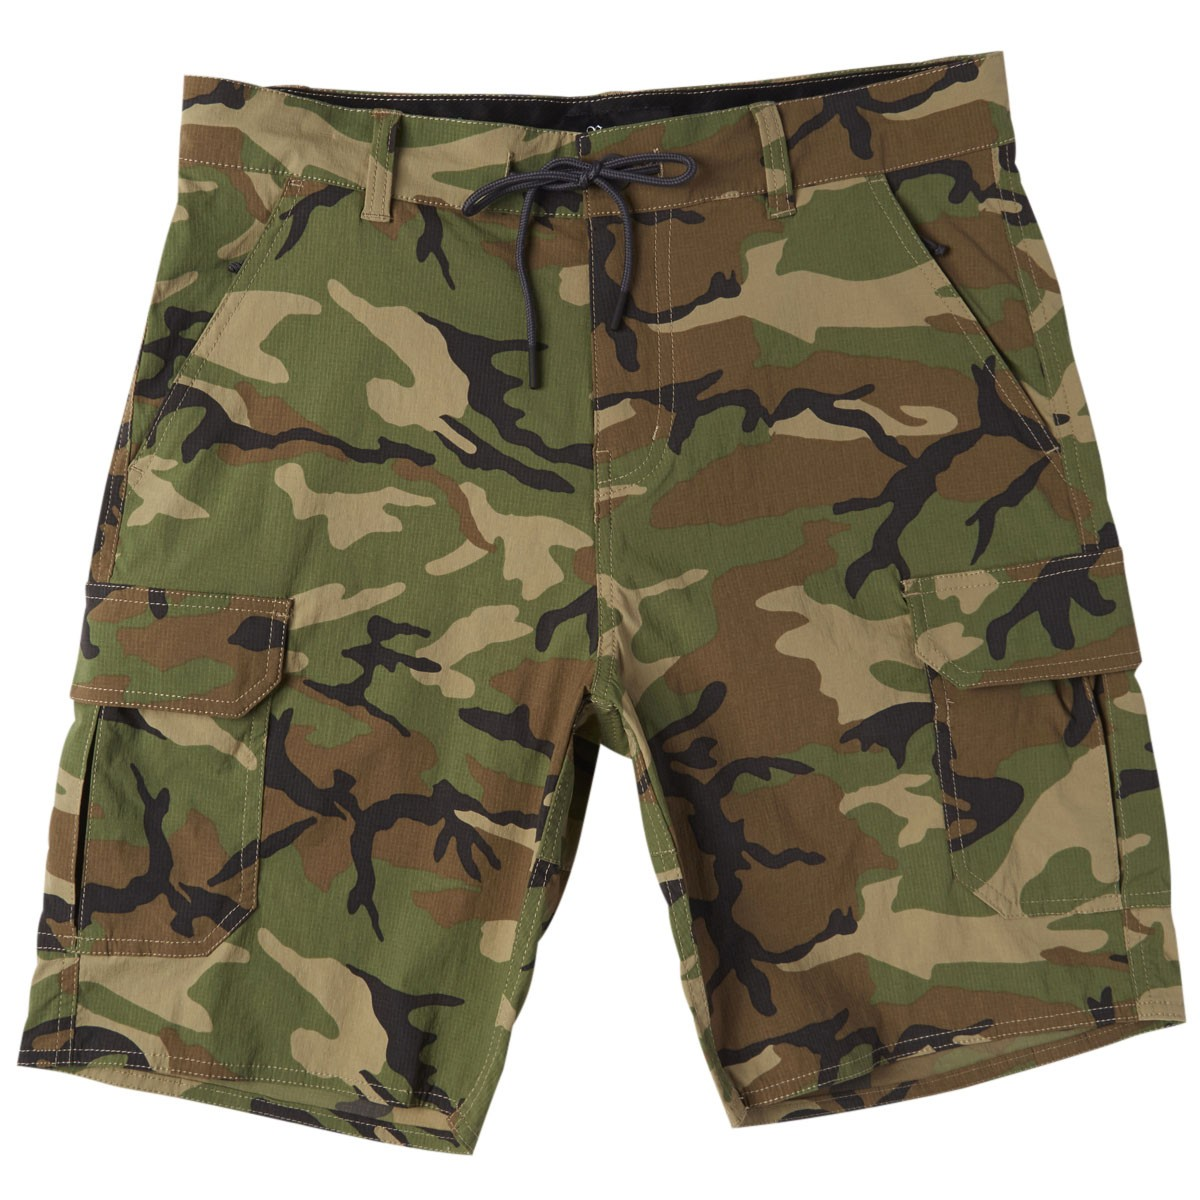 Brixton Transport Cargo Shorts - Multi Camo f3aabe3fc8a